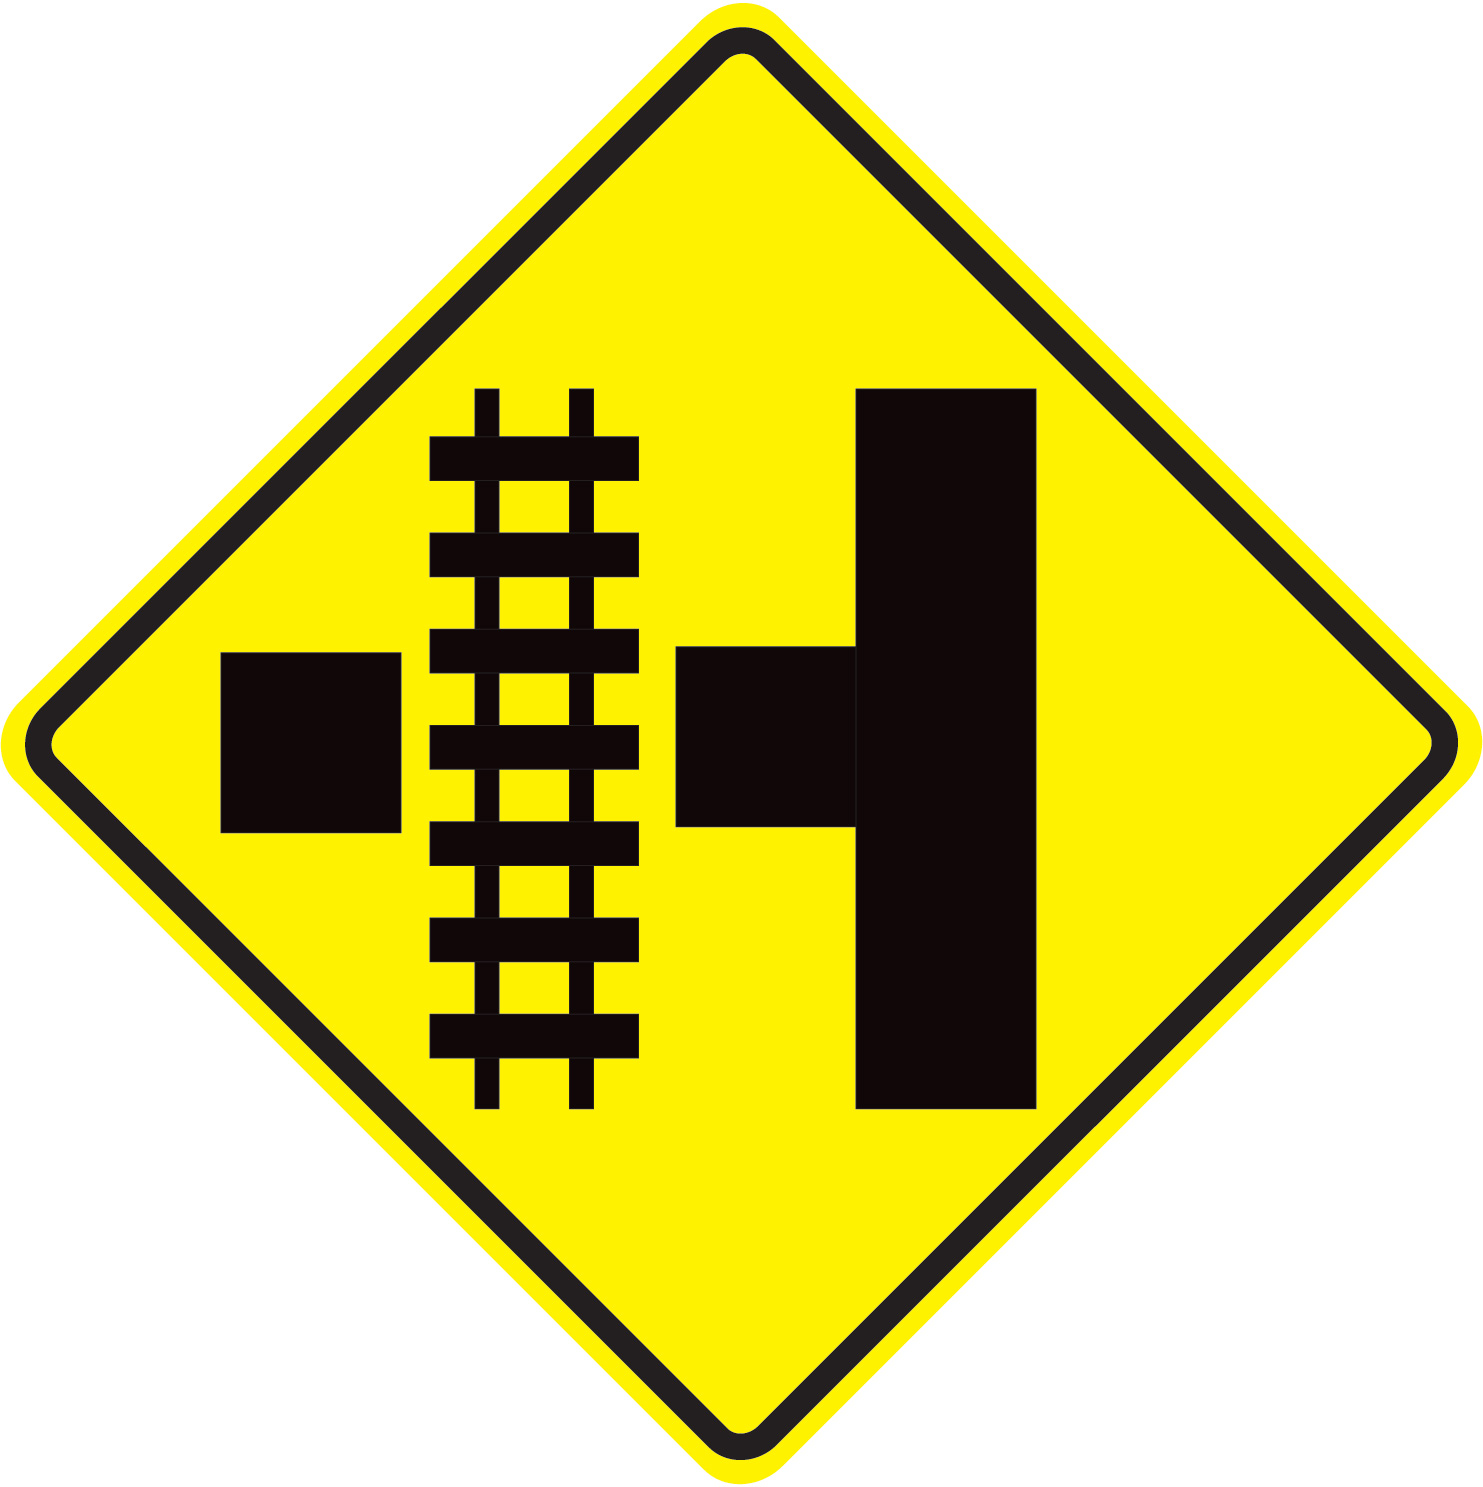 Aldon railroad crossing traffic intersection sign